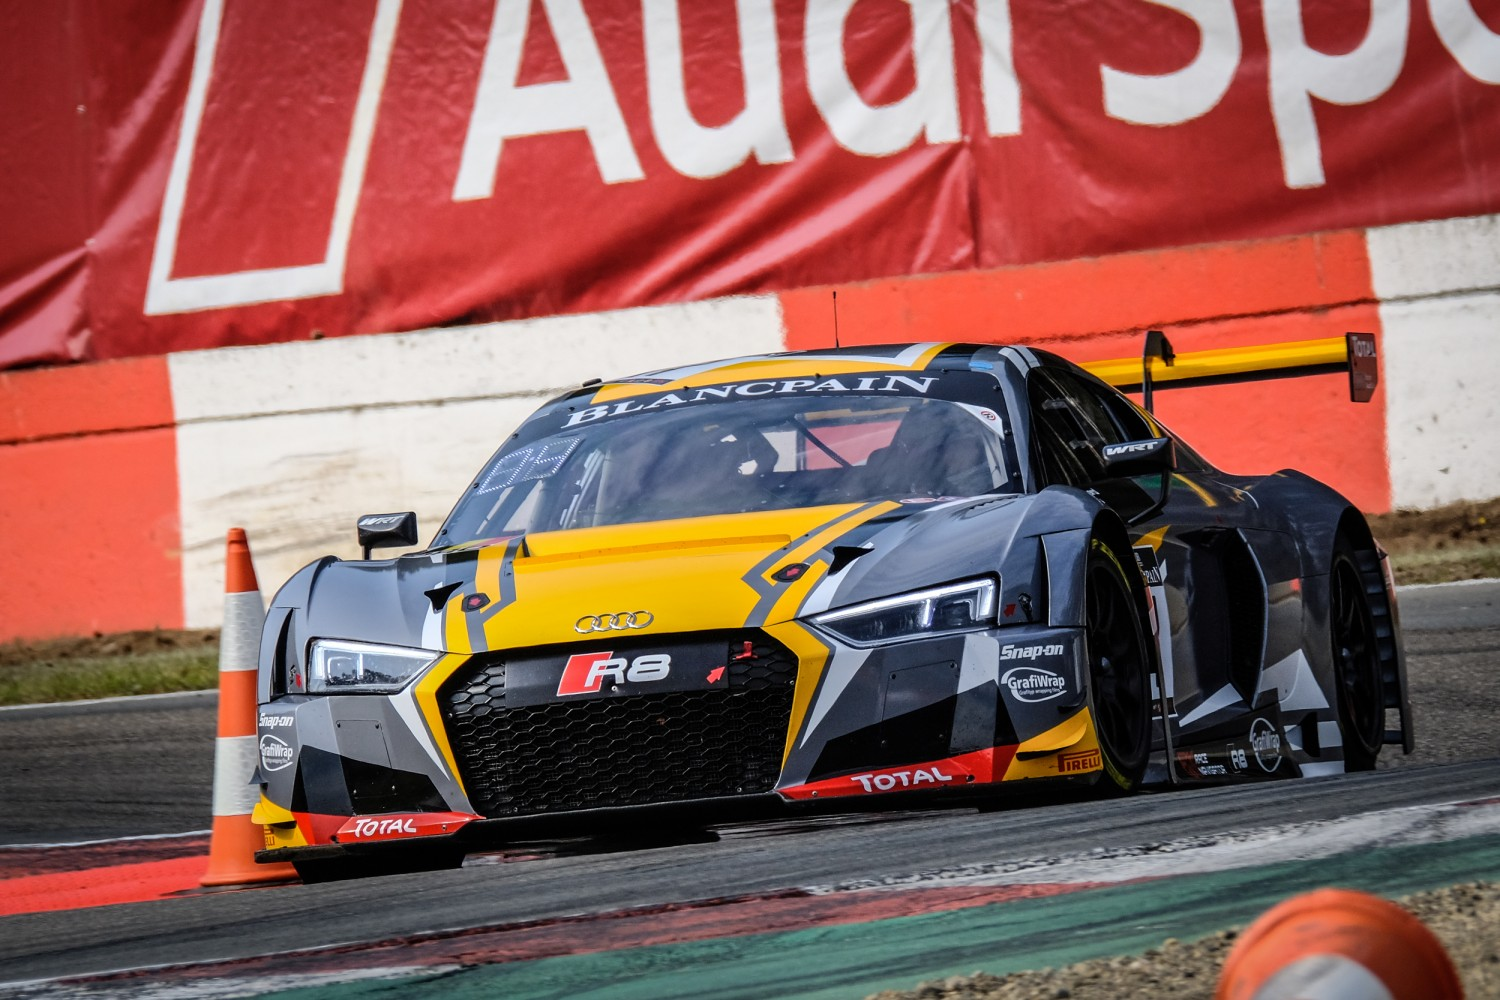 Robin Frijns and Stuart Leonard take close win in qualifying race